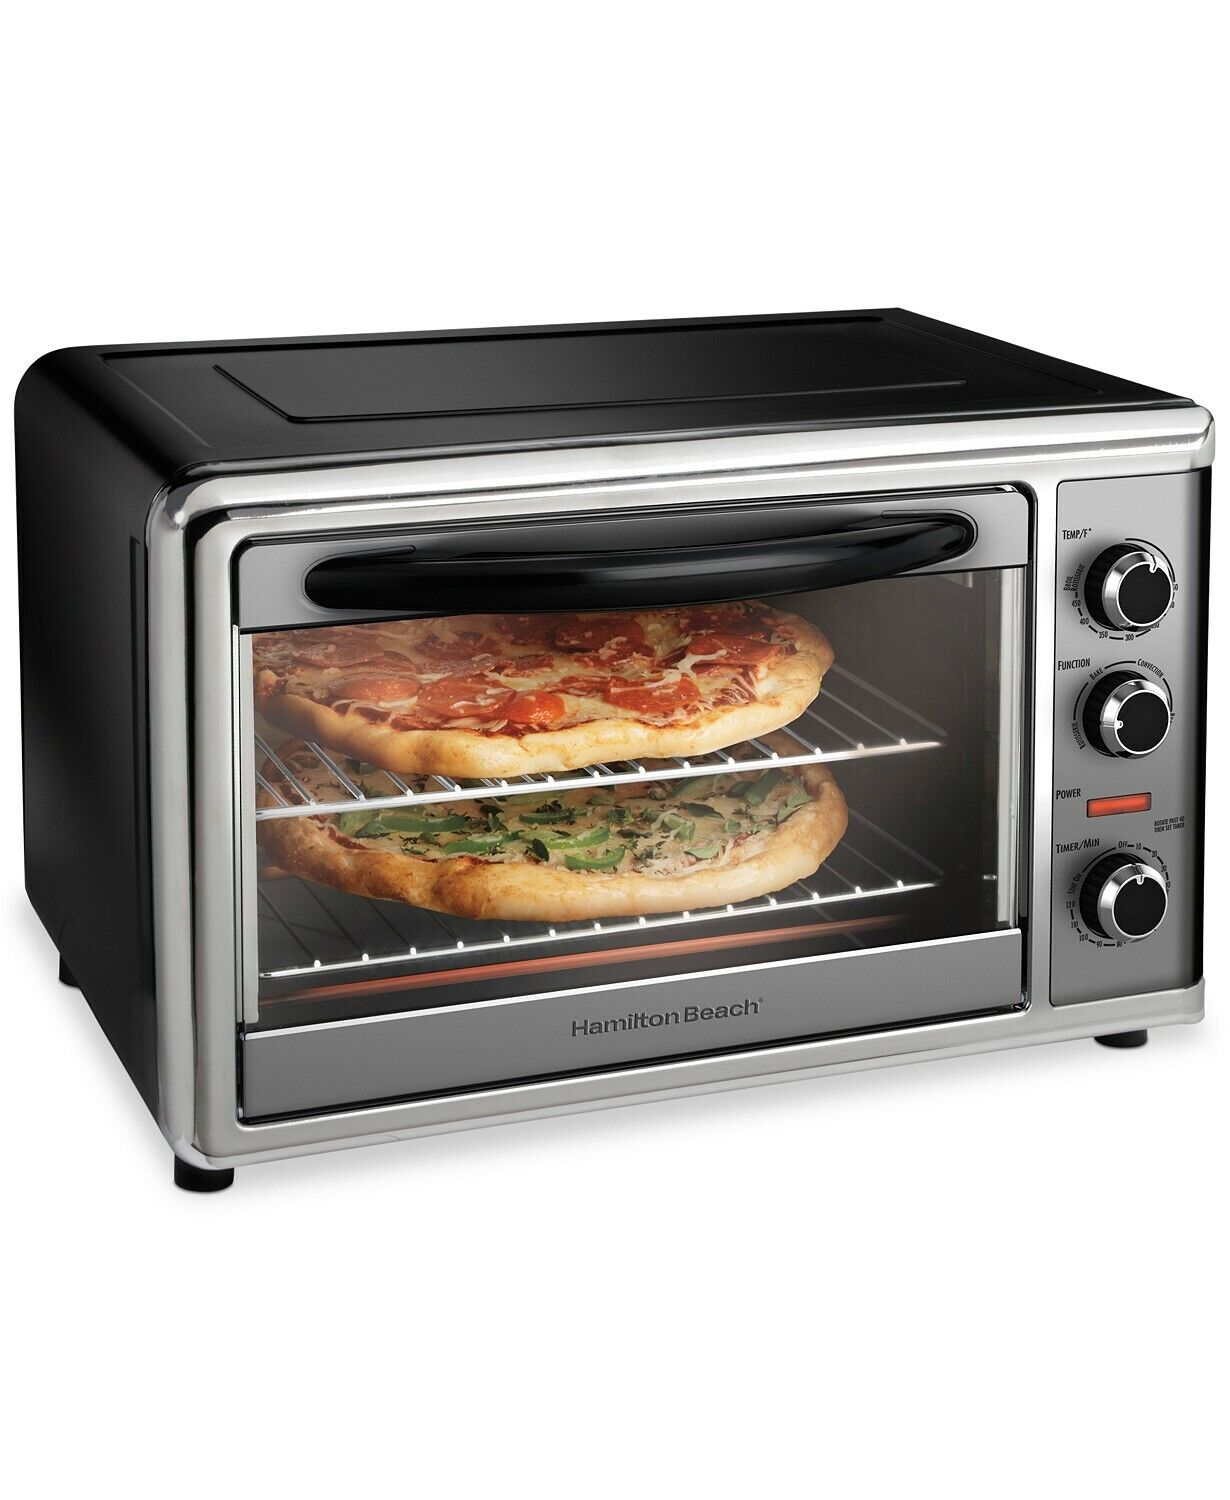 Hamilton Beach 31100 Countertop Oven With Convection And rougeisserie